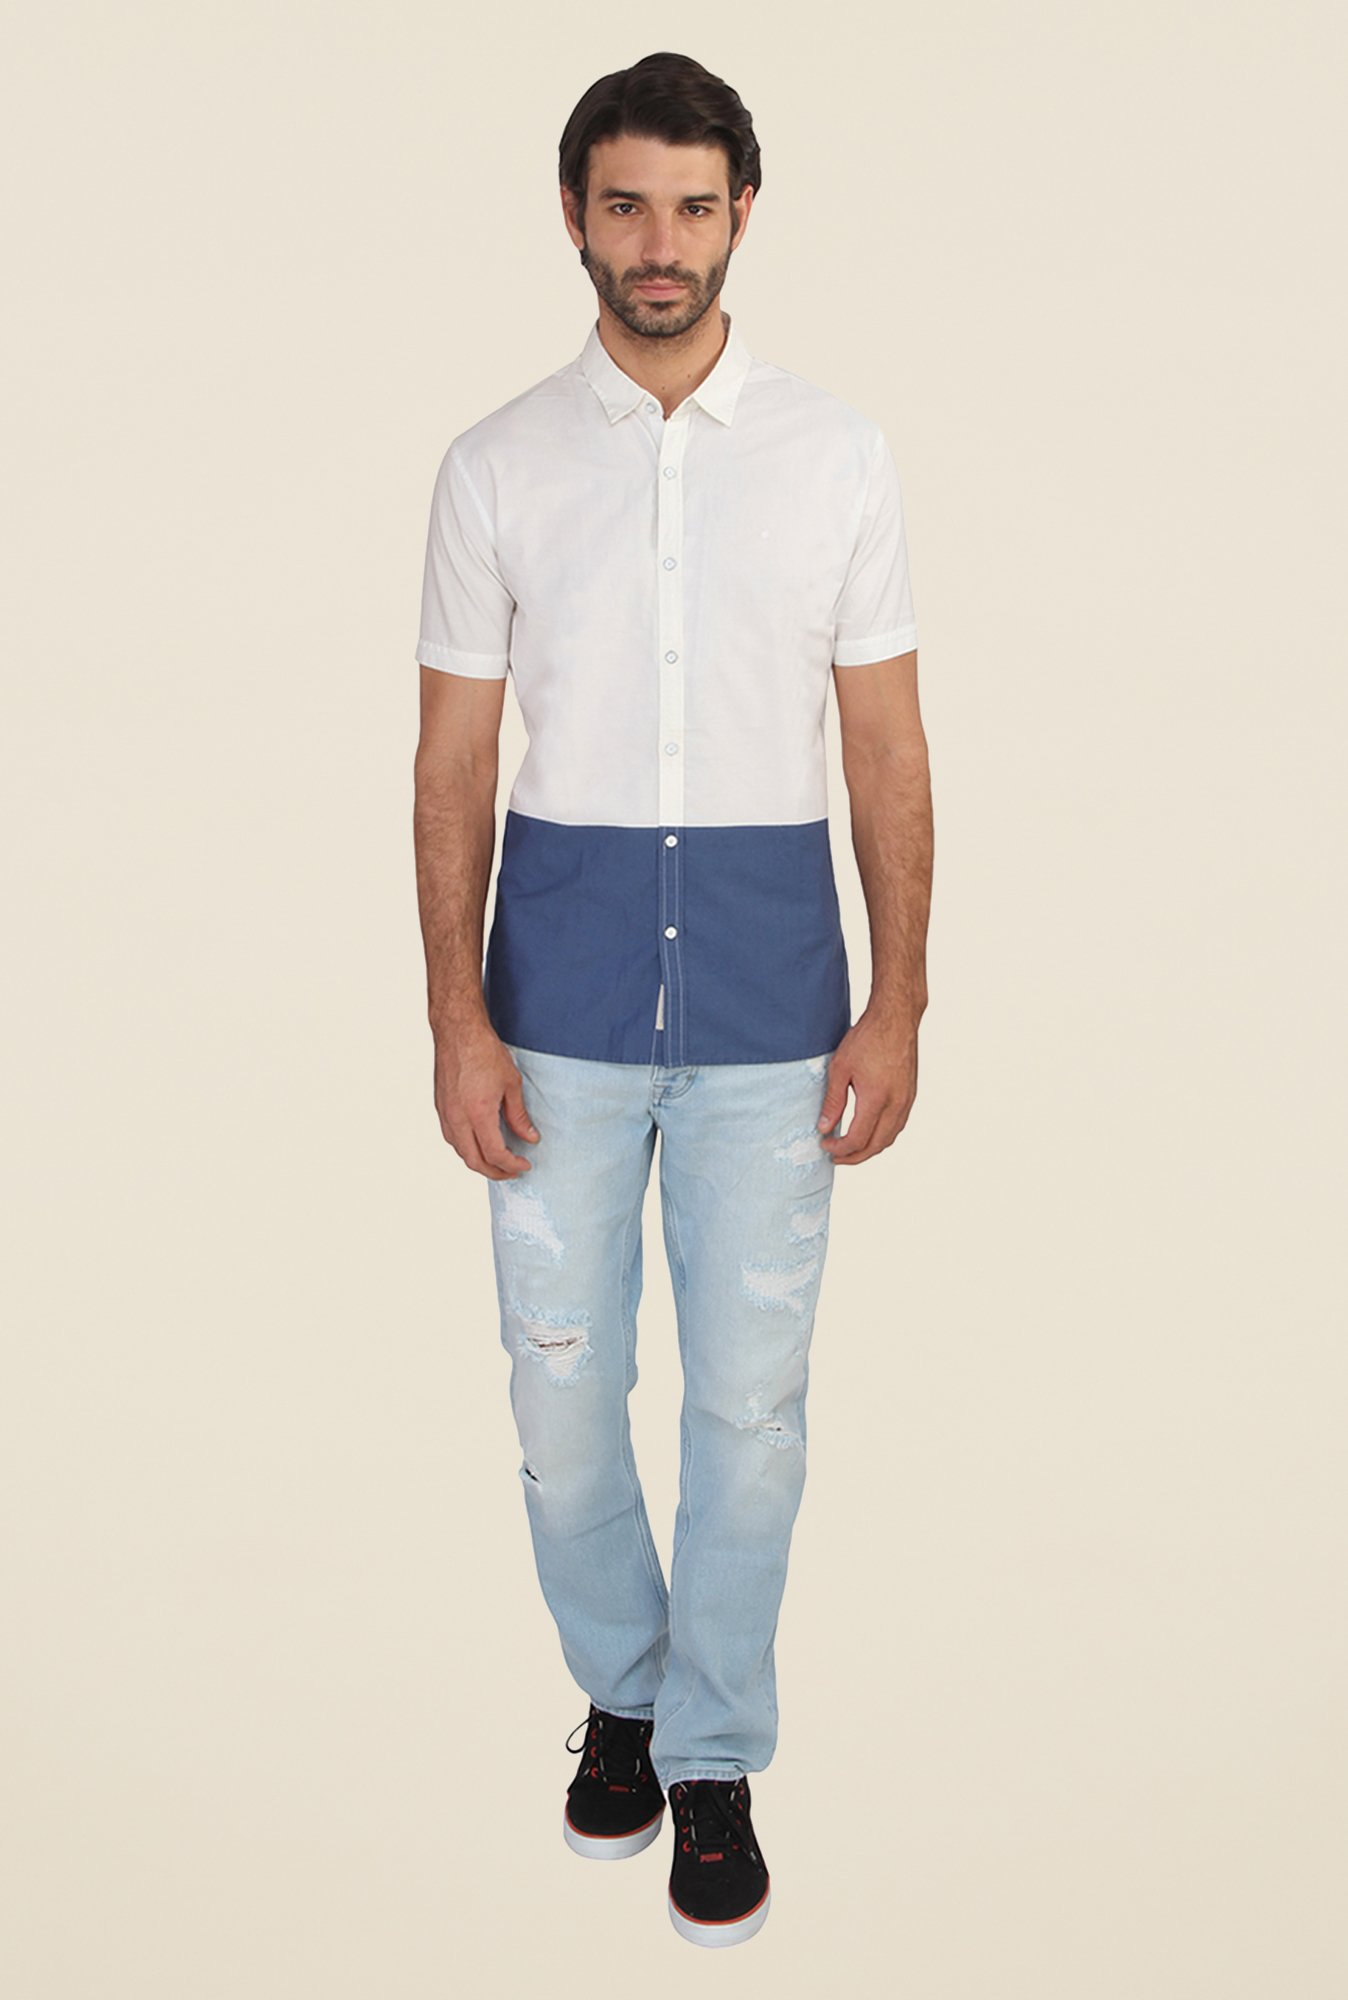 Calvin Klein White & Blue Solid Half Sleeve Shirt